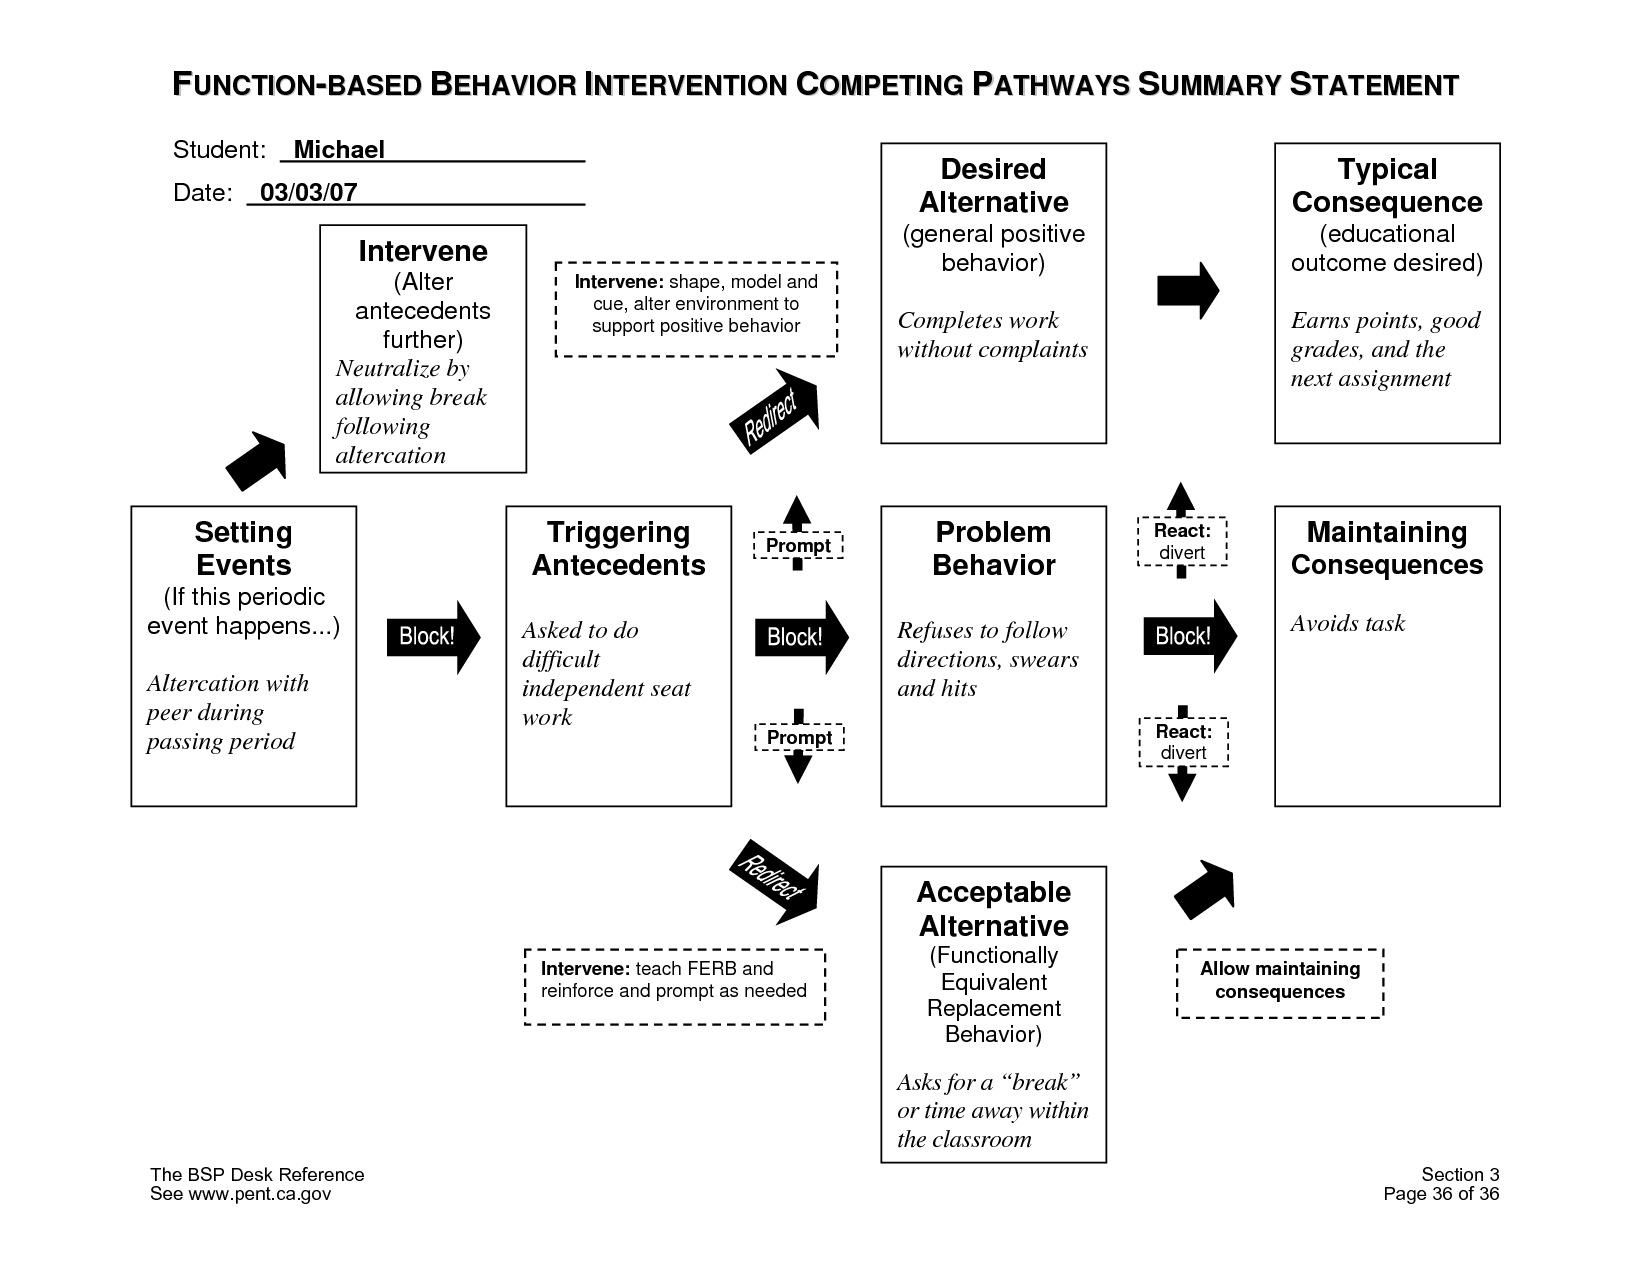 Competing Pathways Model Explains Why Behaviors Are